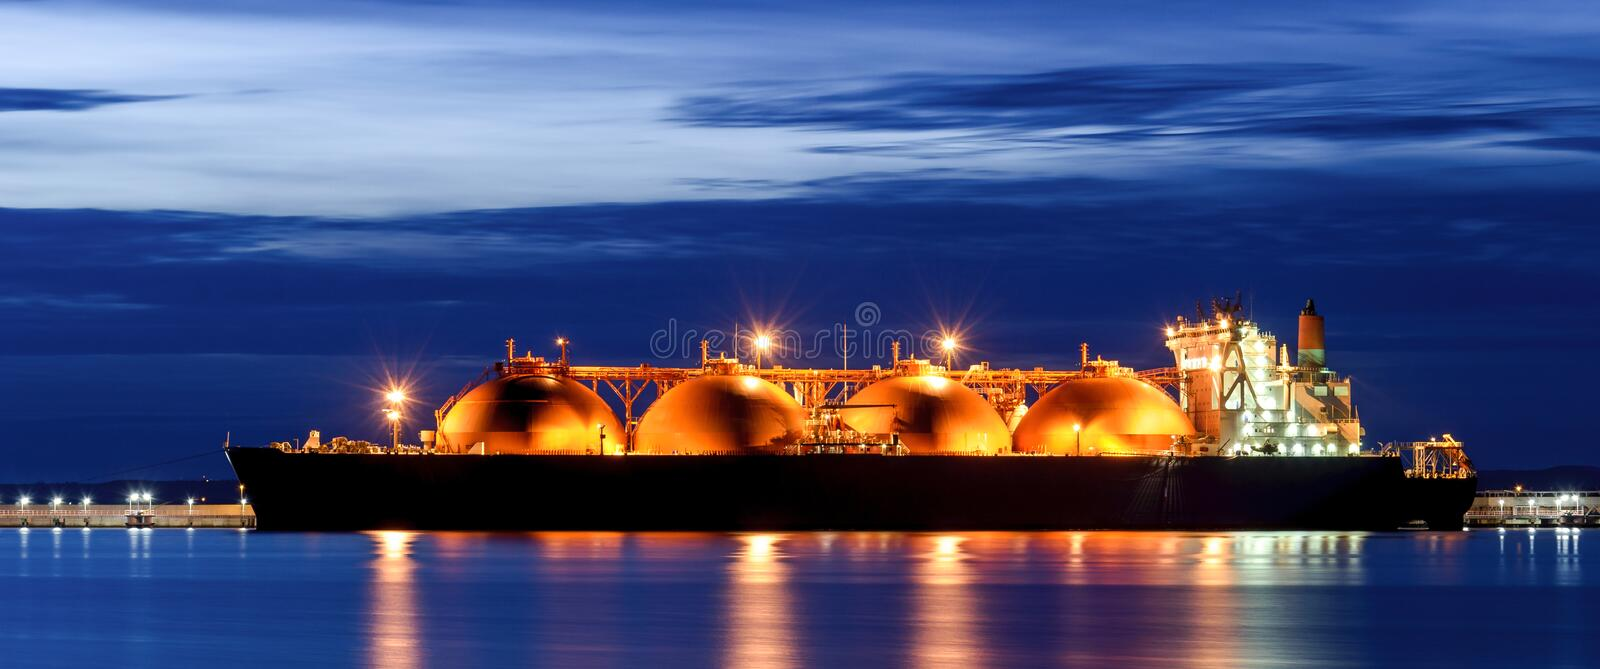 LNG TANKER AT THE GAS TERMINAL royalty free stock photo